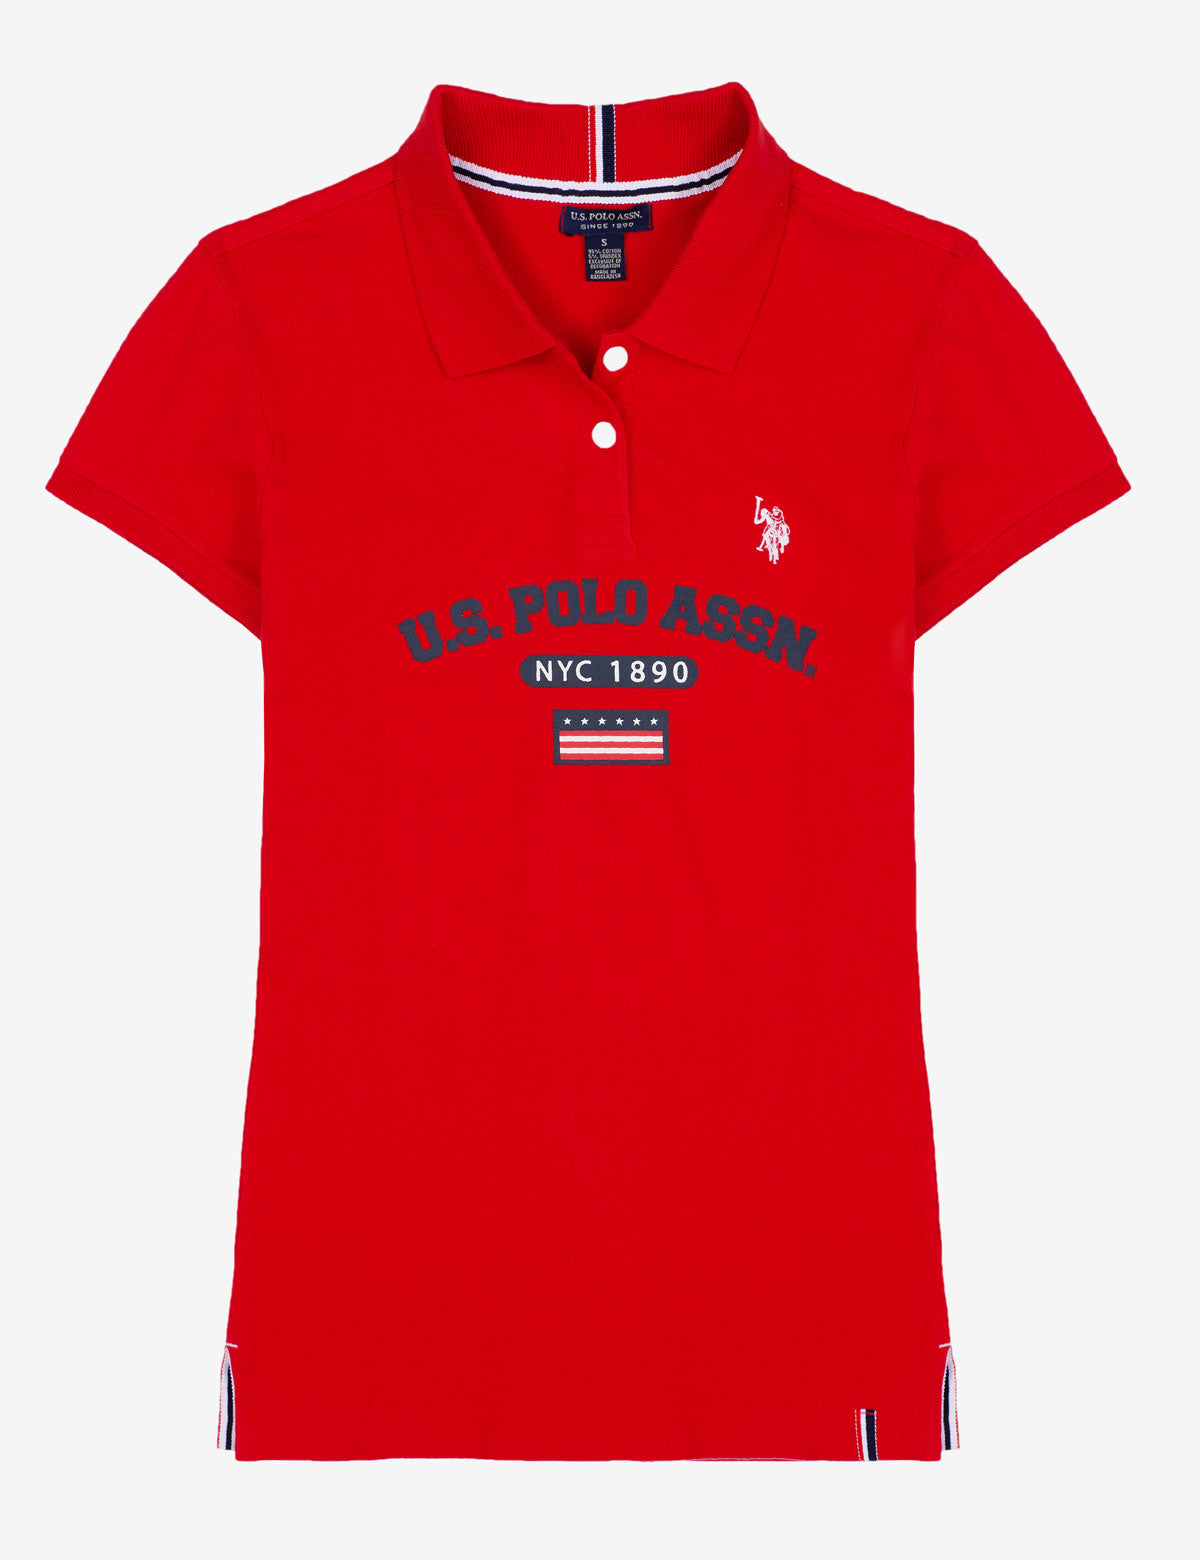 U.S. POLO ASSN. NEW YORK POLO SHIRT - U.S. Polo Assn.